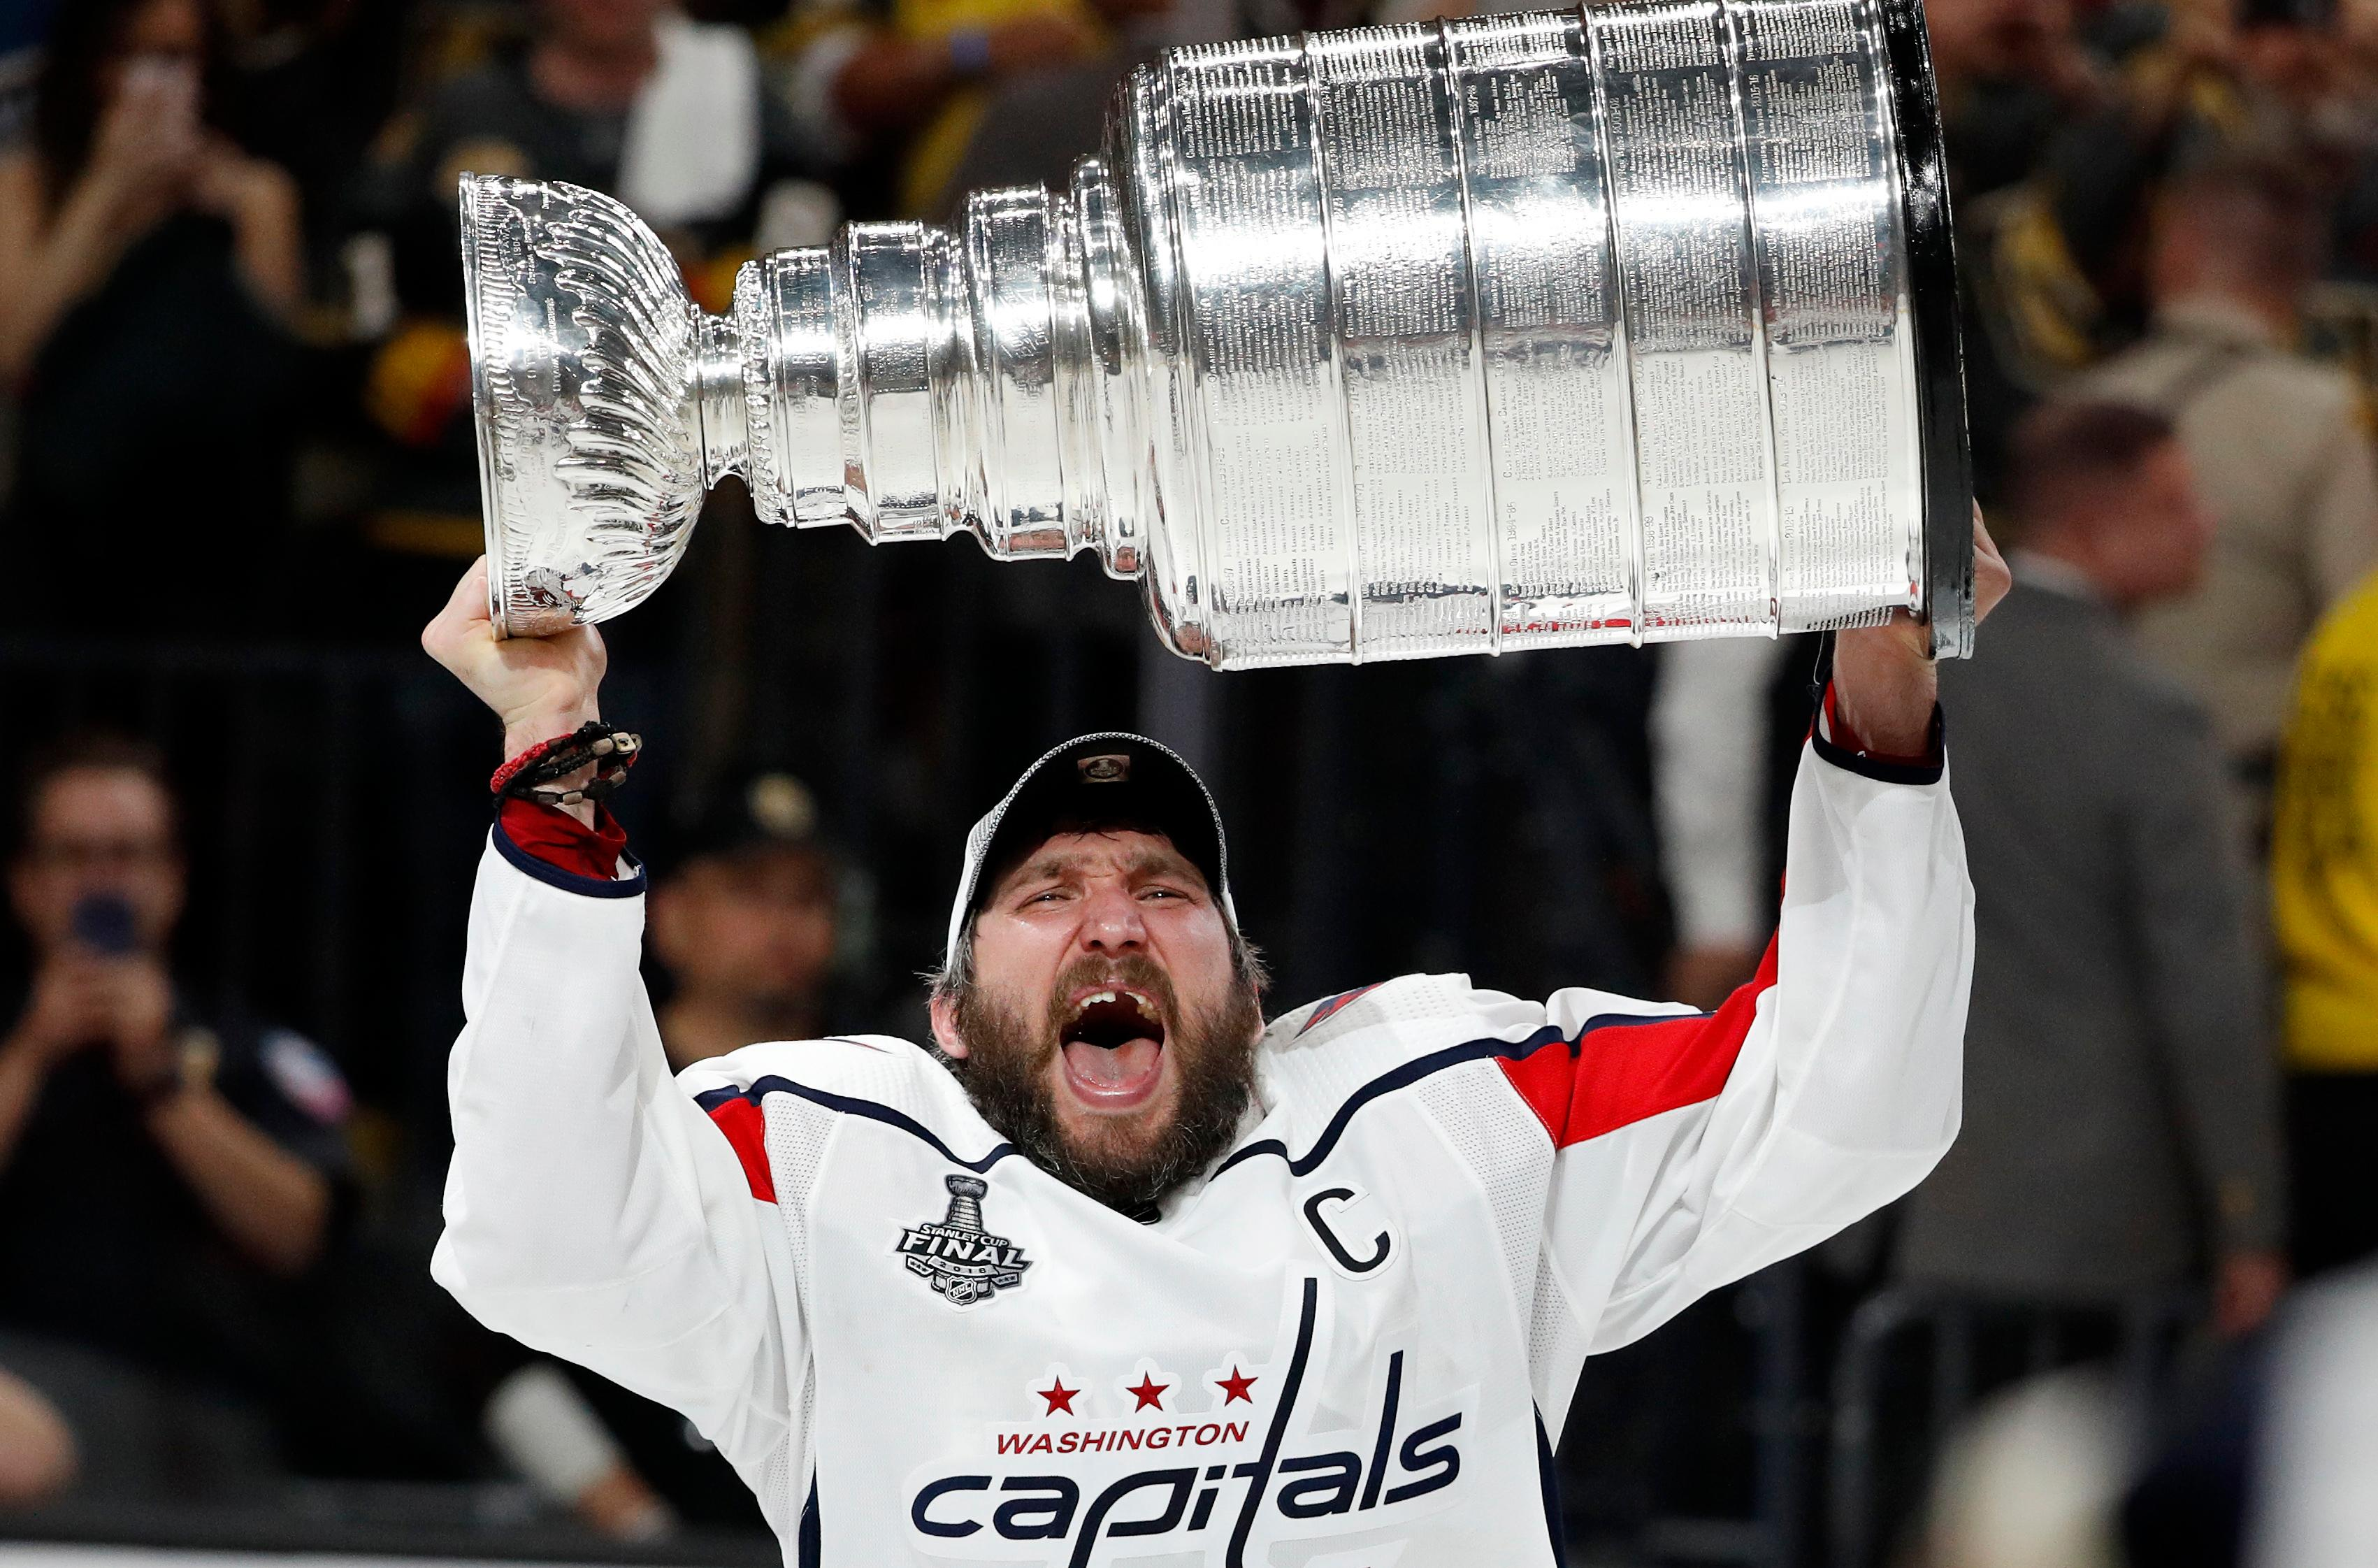 2018 Stanley Cup Goes to Washington Capitals  Vegas Golden Knights Fall  Short in Last Game of Legendary Finals b06a6986b1d